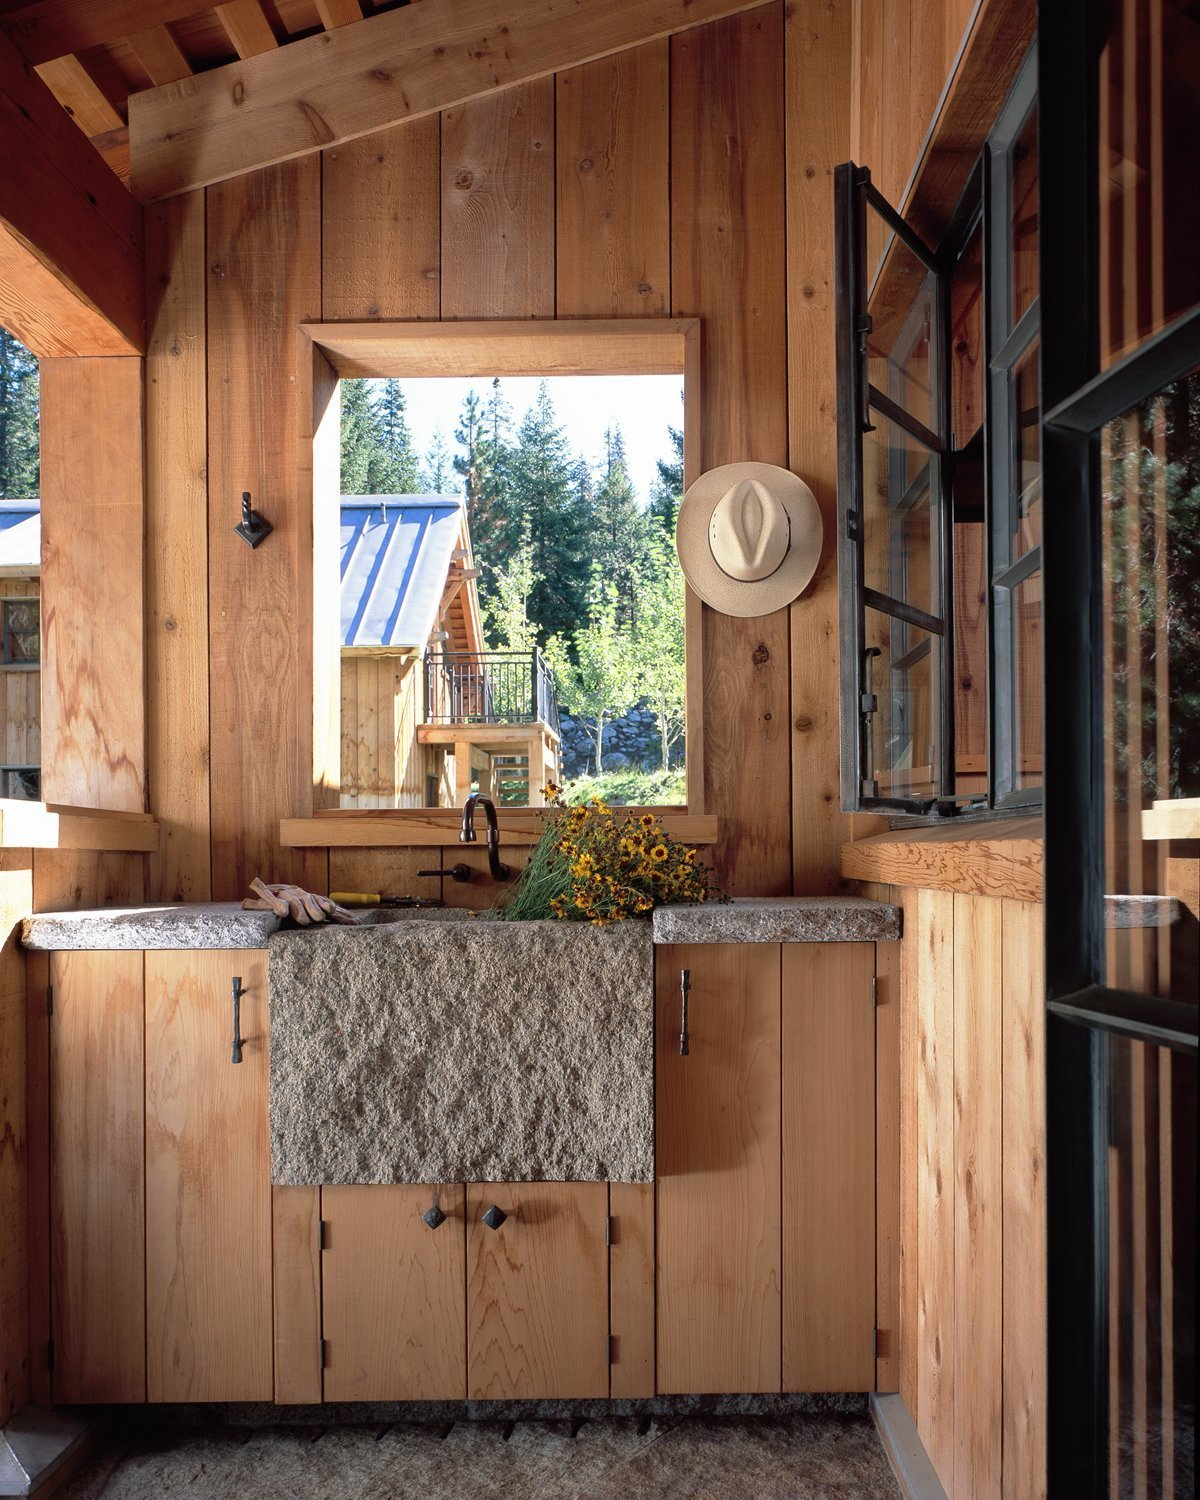 Outdoor  Photo 6 of 11 in A Rustic Home Rivals the Rugged Beauty of Its Forest Setting